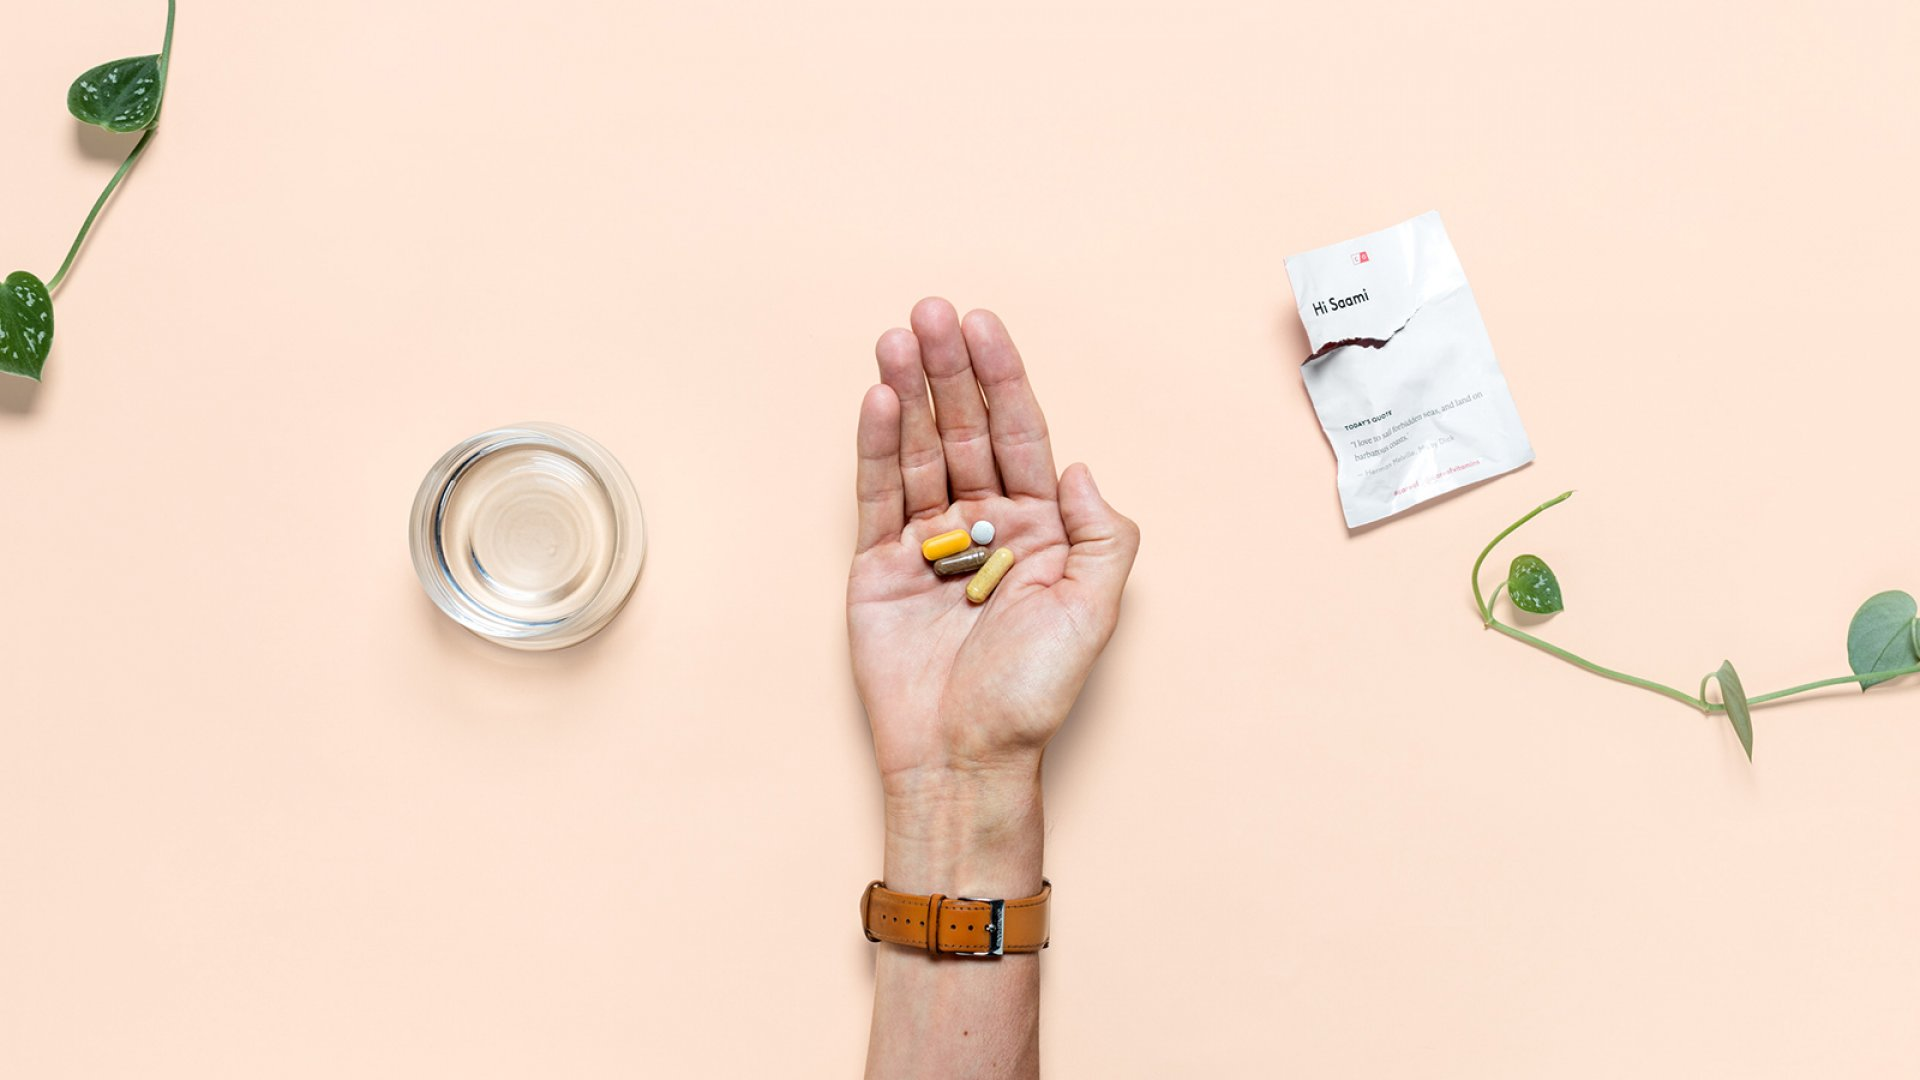 This Vitamin Startup Wanted to Get it Right -- So It Launched a Completely Fake Company First